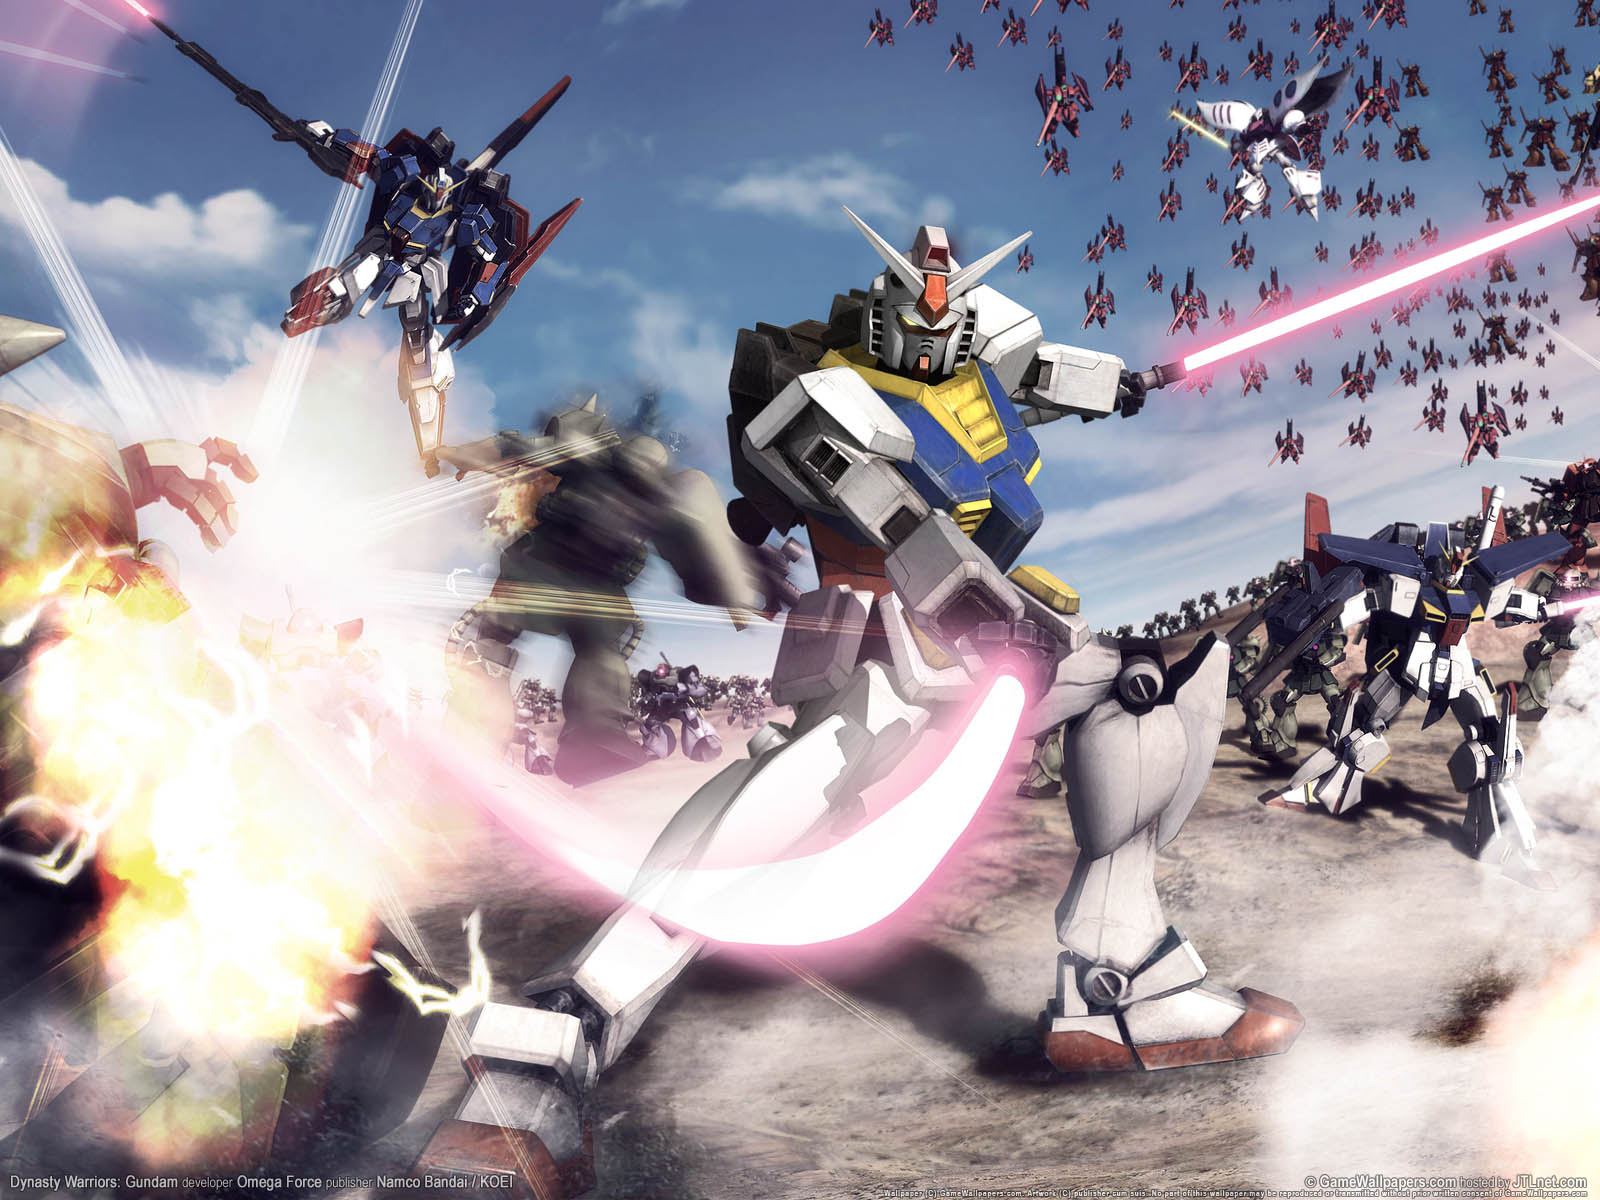 Gundam Wallpaper Top HD Wallpapers 1600x1200